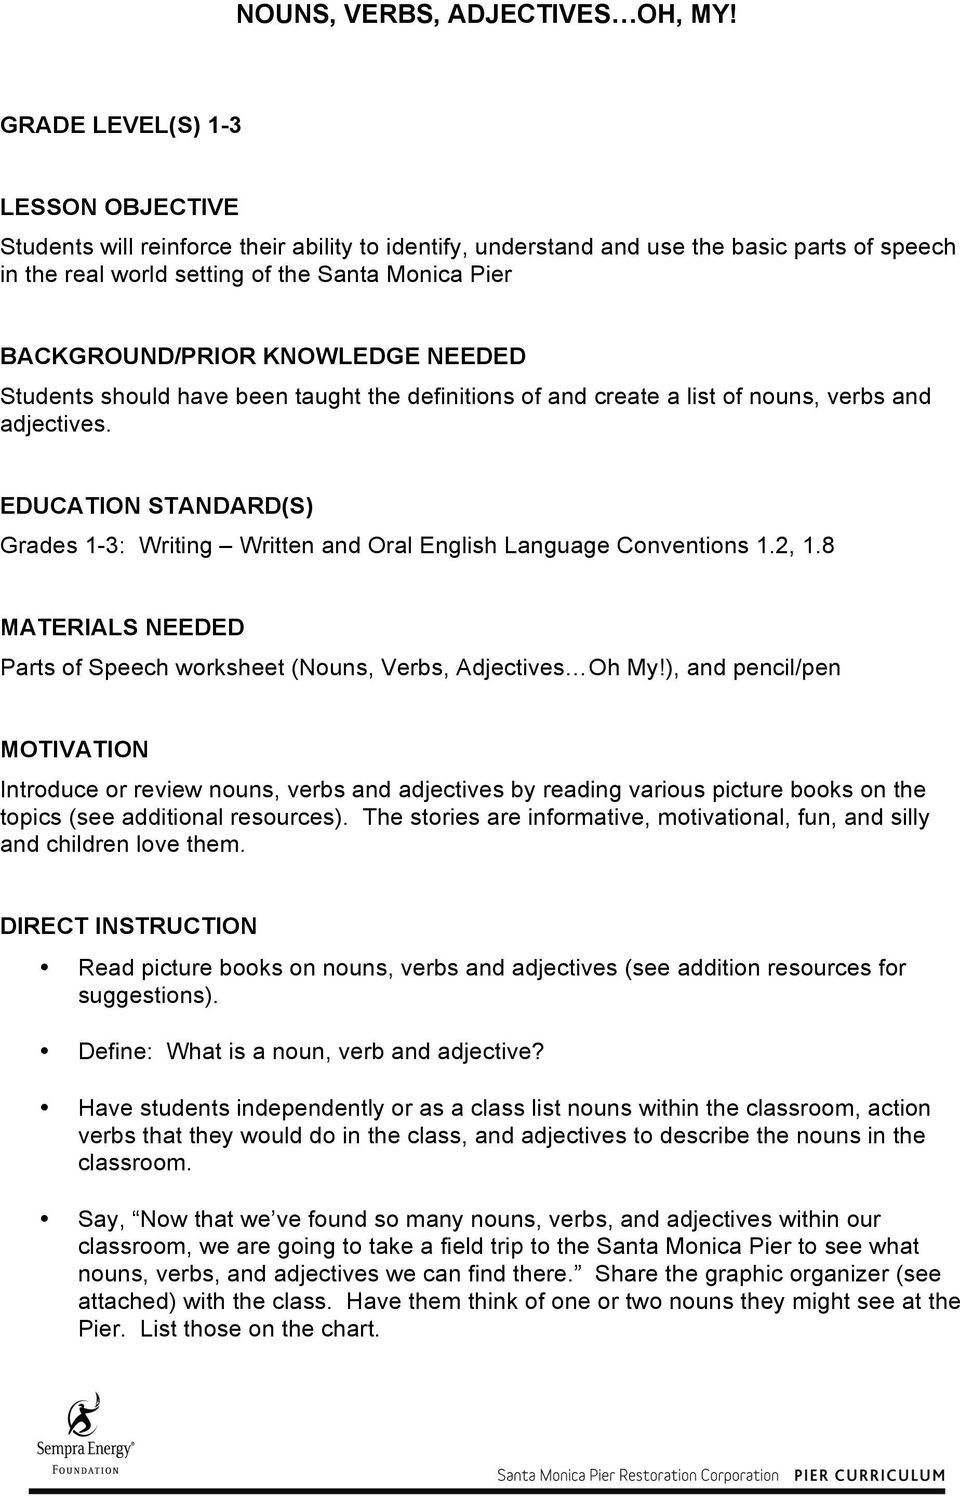 Noun Verb Adjective Worksheet Nouns Verbs Adjectives Oh My Pdf Free Download